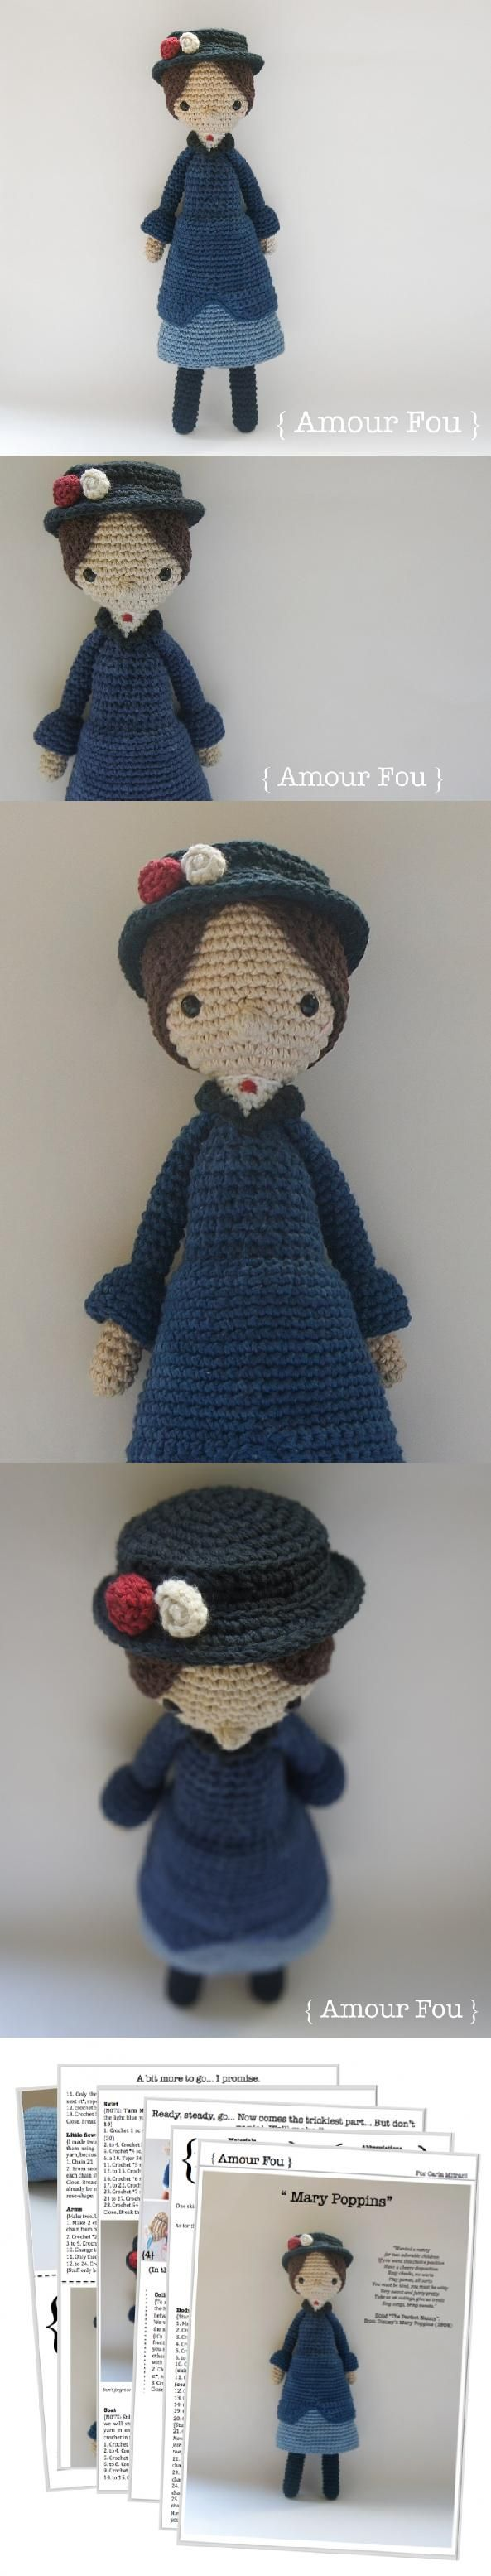 Mary Poppins Amigurumi Pattern - @amylynnmazz would you knit one for the raffle?!